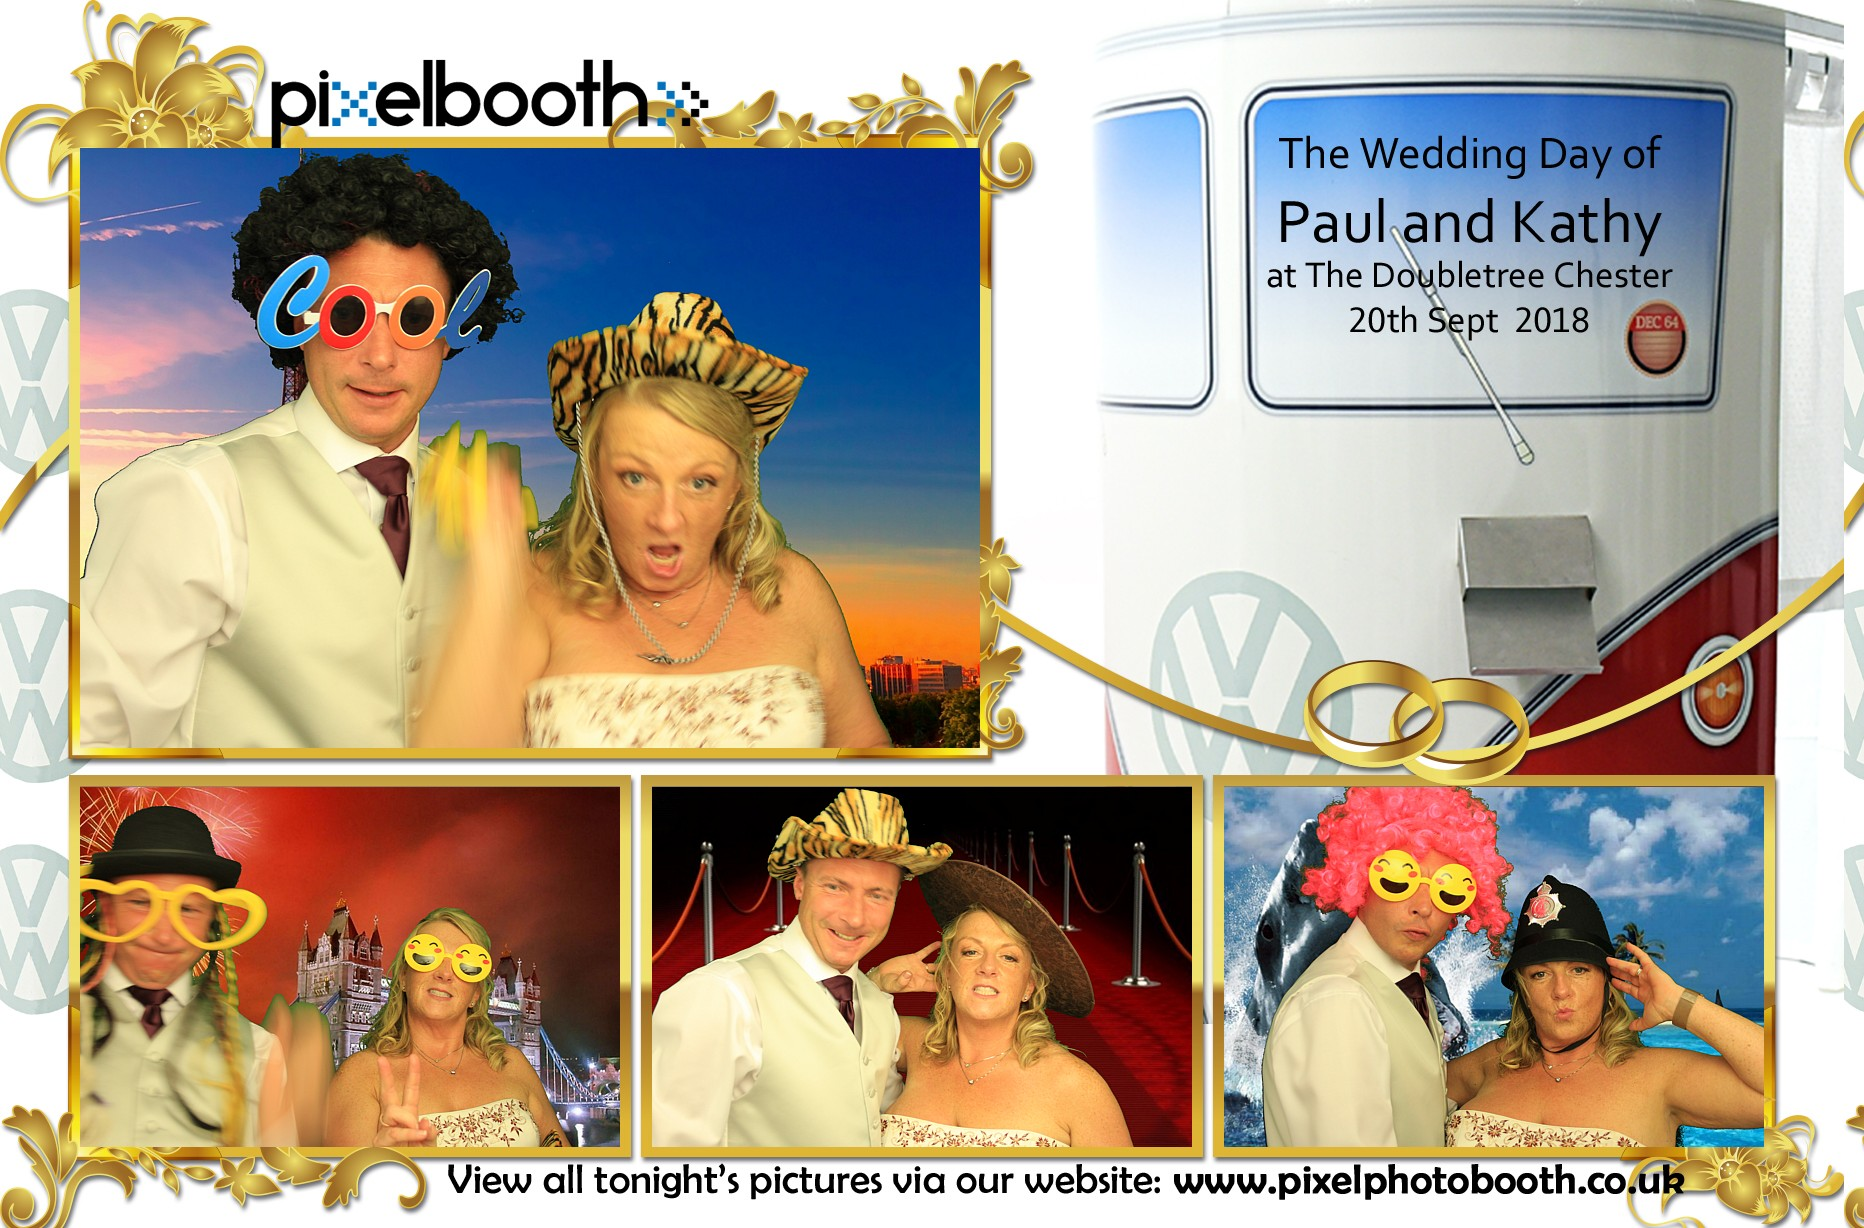 20th Sept 2018: Paul and Kathy's Wedding at The Doubletree Chester